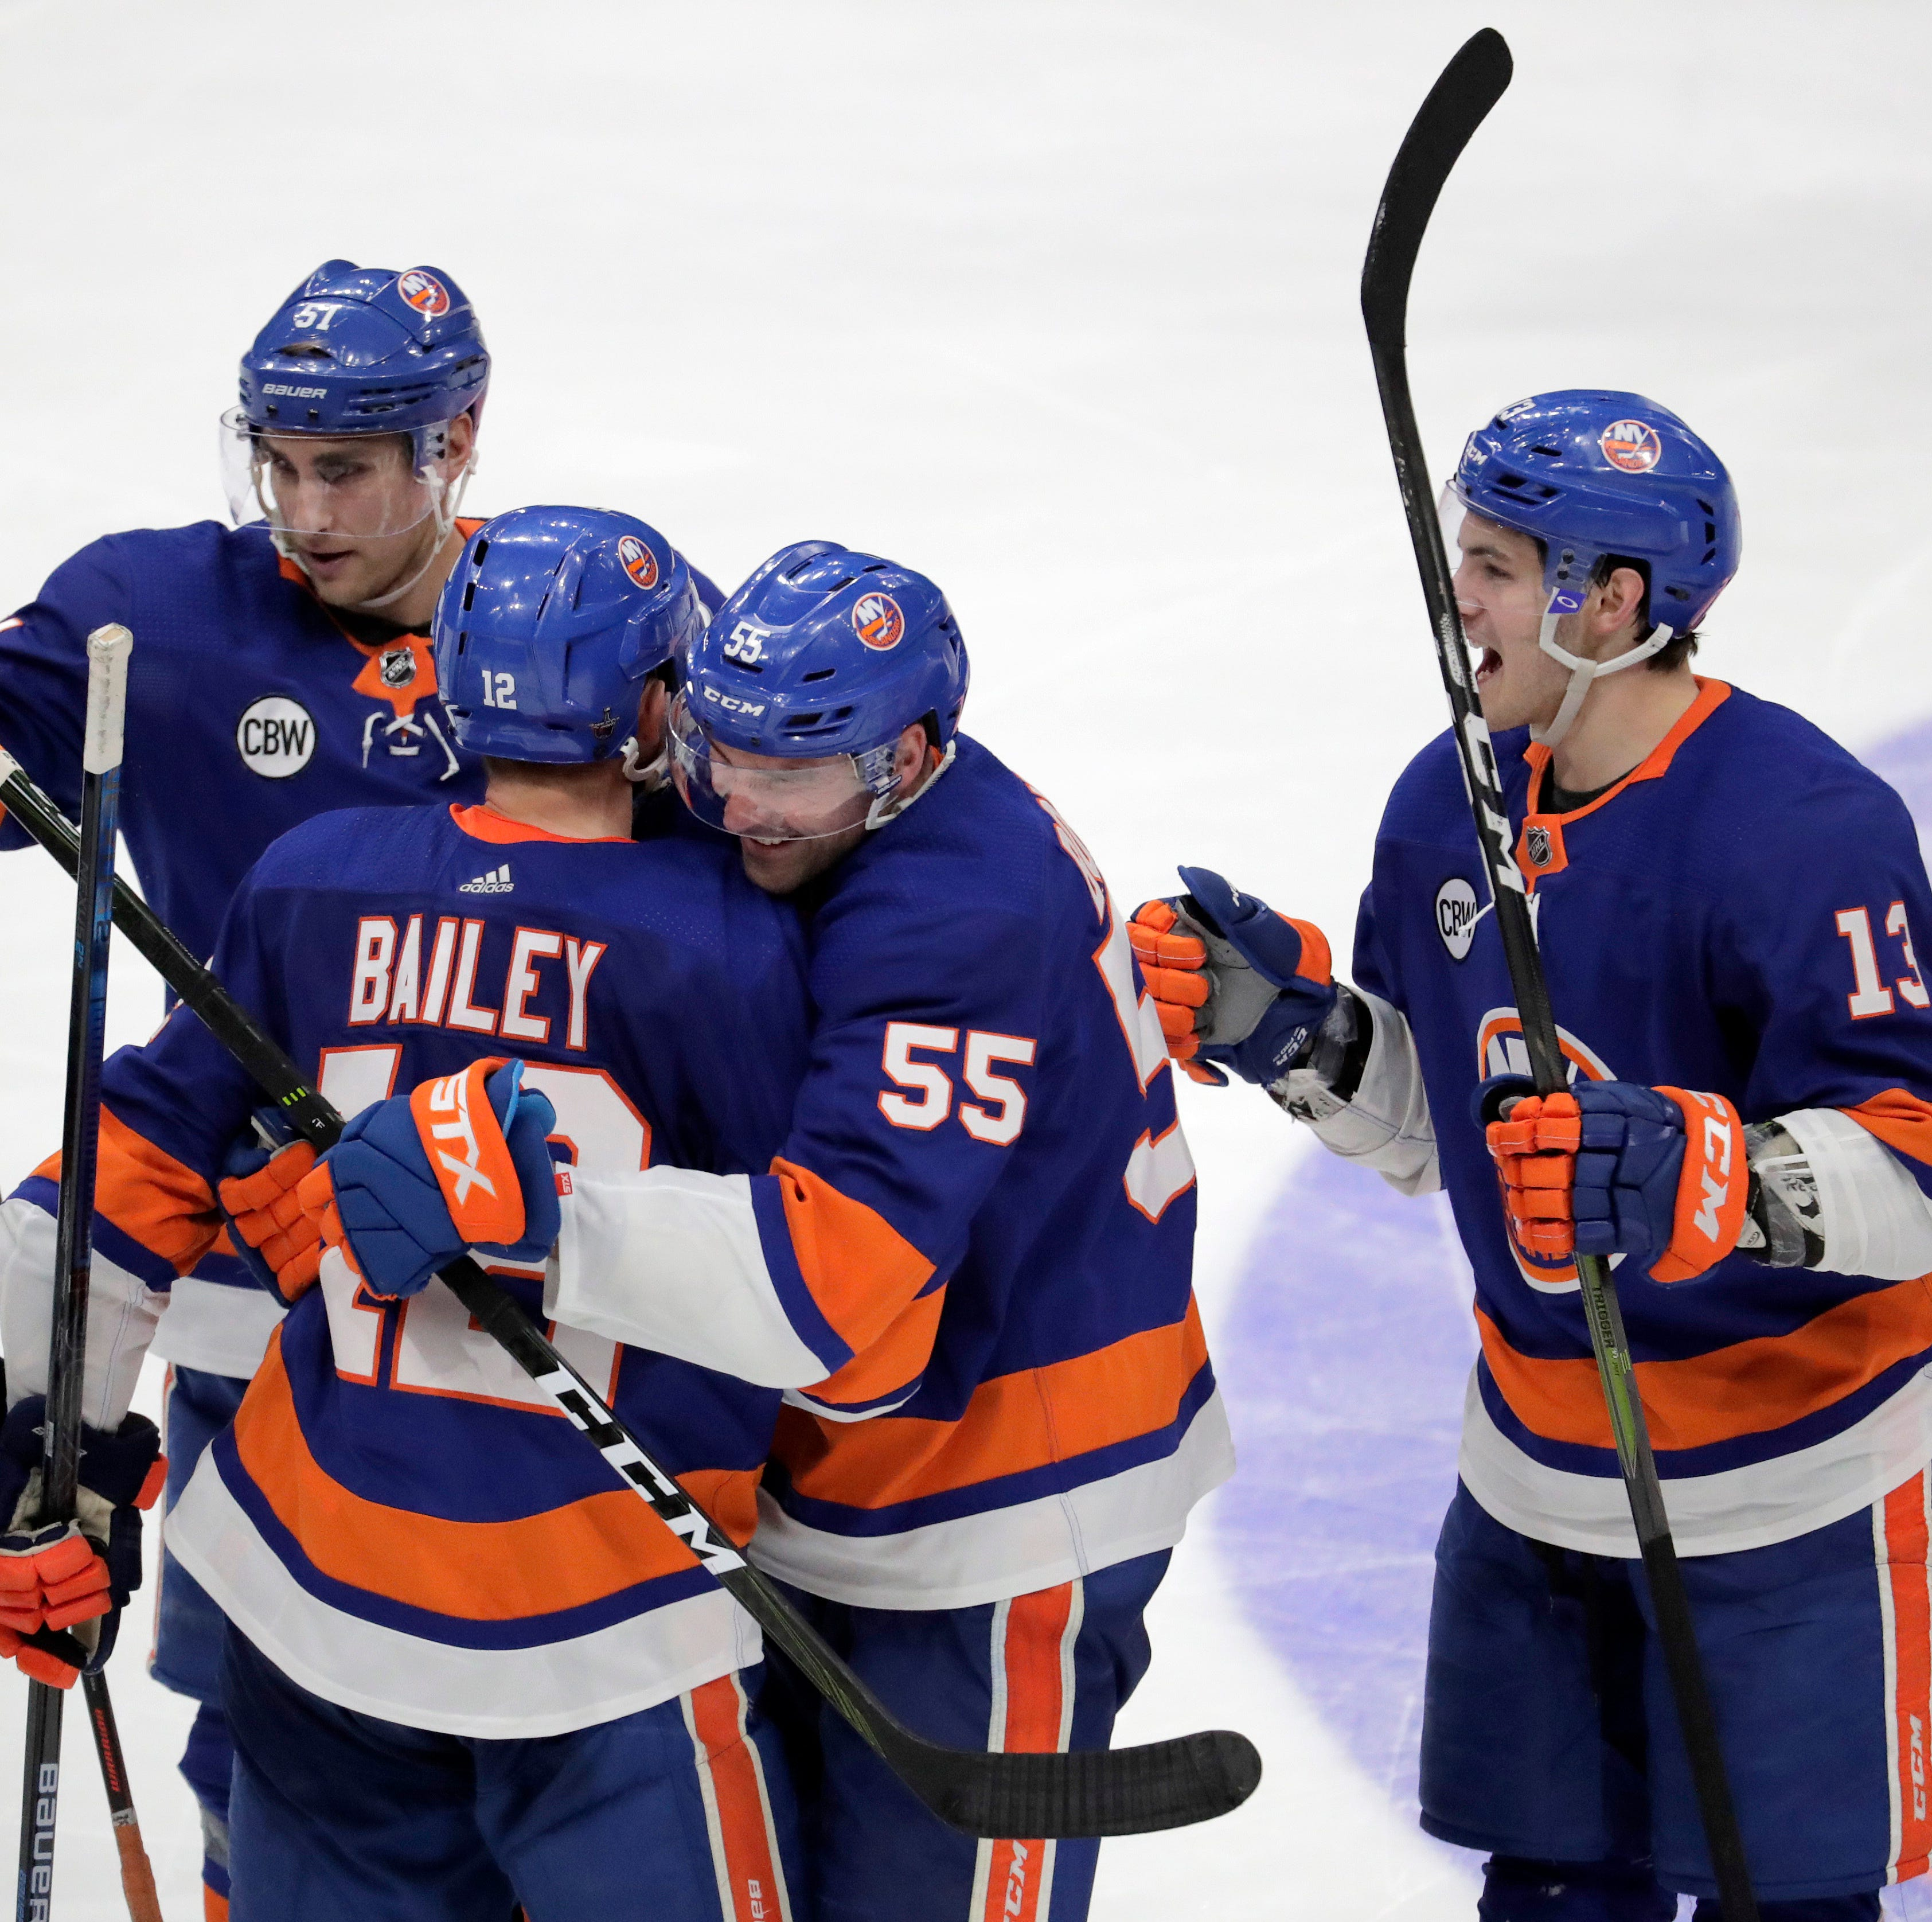 New York Islanders right wing Josh Bailey is hugged by defenseman Johnny Boychuk (55) as teammates celebrate after Bailey scored in overtime against the Pittsburgh Penguins during Game 1 of an NHL hockey first-round playoff series, Wednesday, April 10, 2019, in Uniondale, N.Y. The Islanders won 4-3. (AP Photo/Julio Cortez)